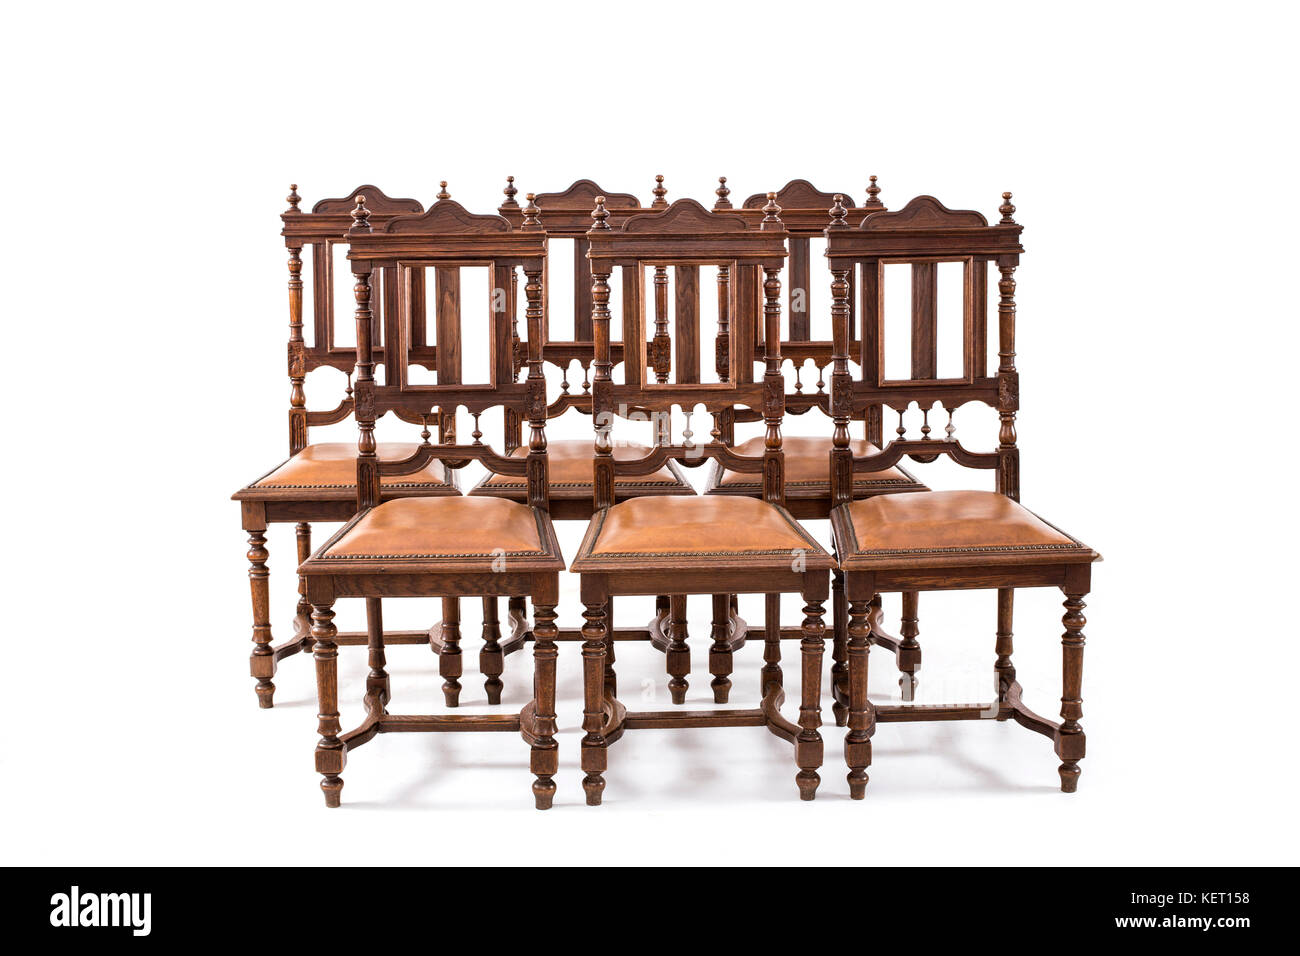 Set Of Old Fashioned Wood Chairs On The White Background.   Stock Image